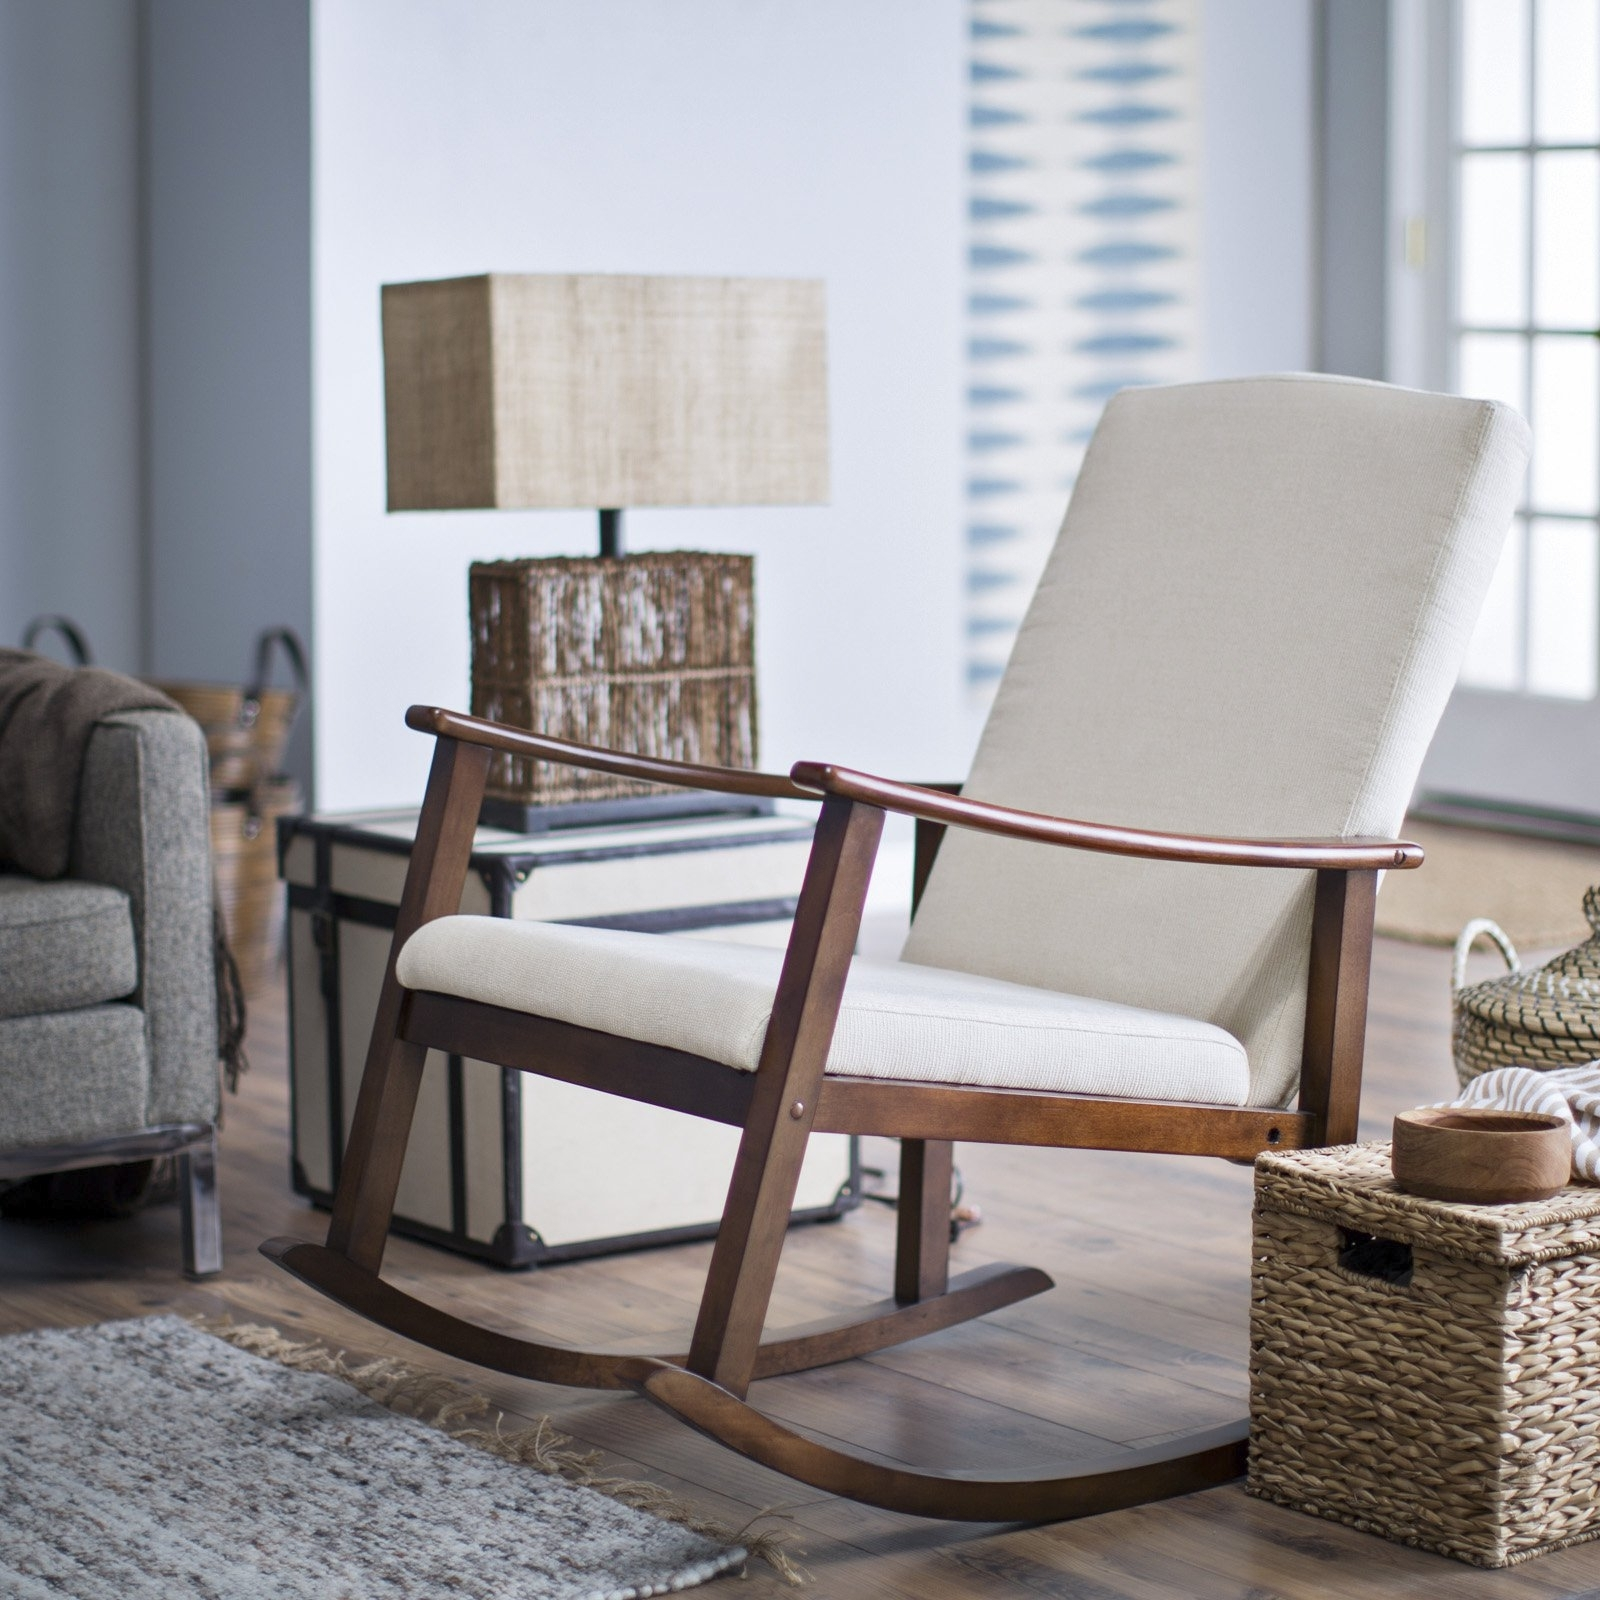 Modern Rocking Chair For Nursery (View 6 of 20)